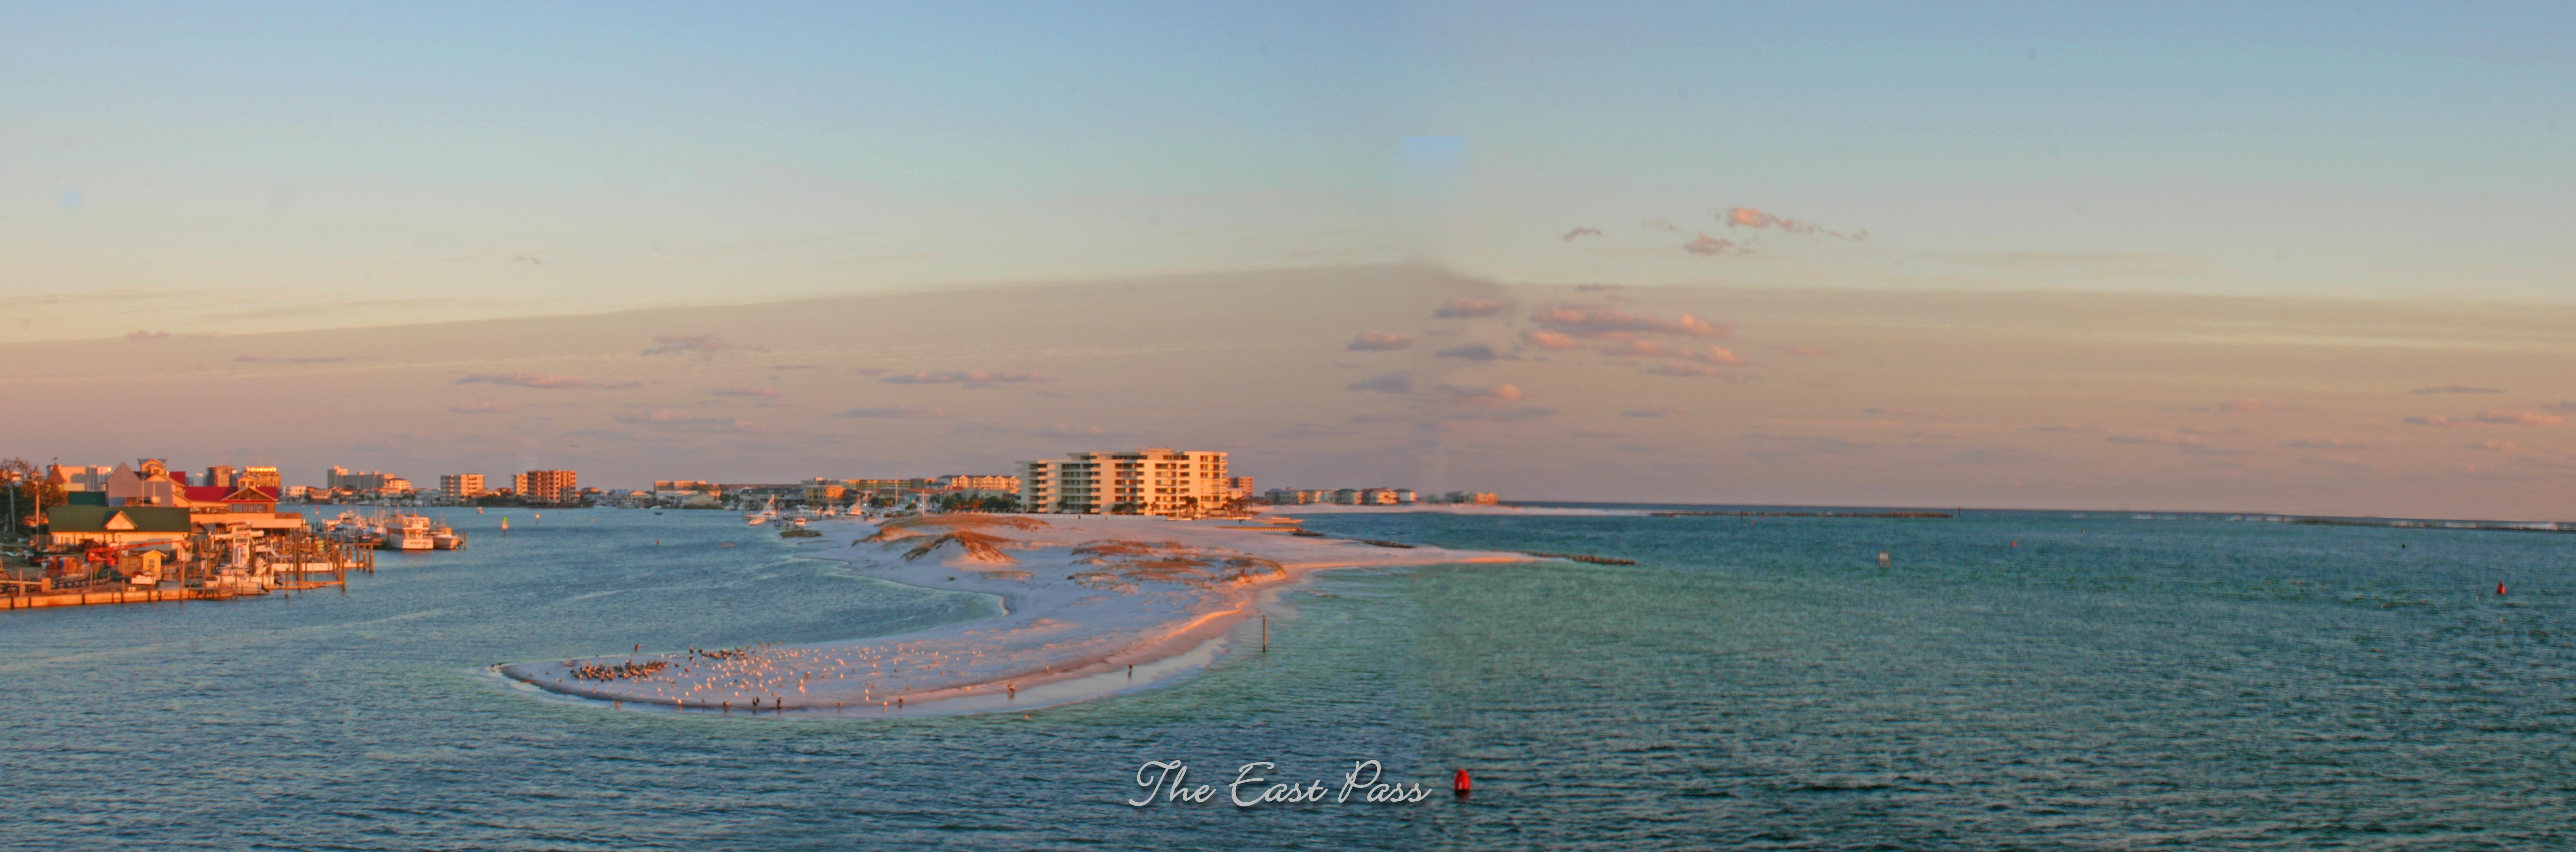 © 2020 Destin Photo   All Rights Reserved   850-755-2611